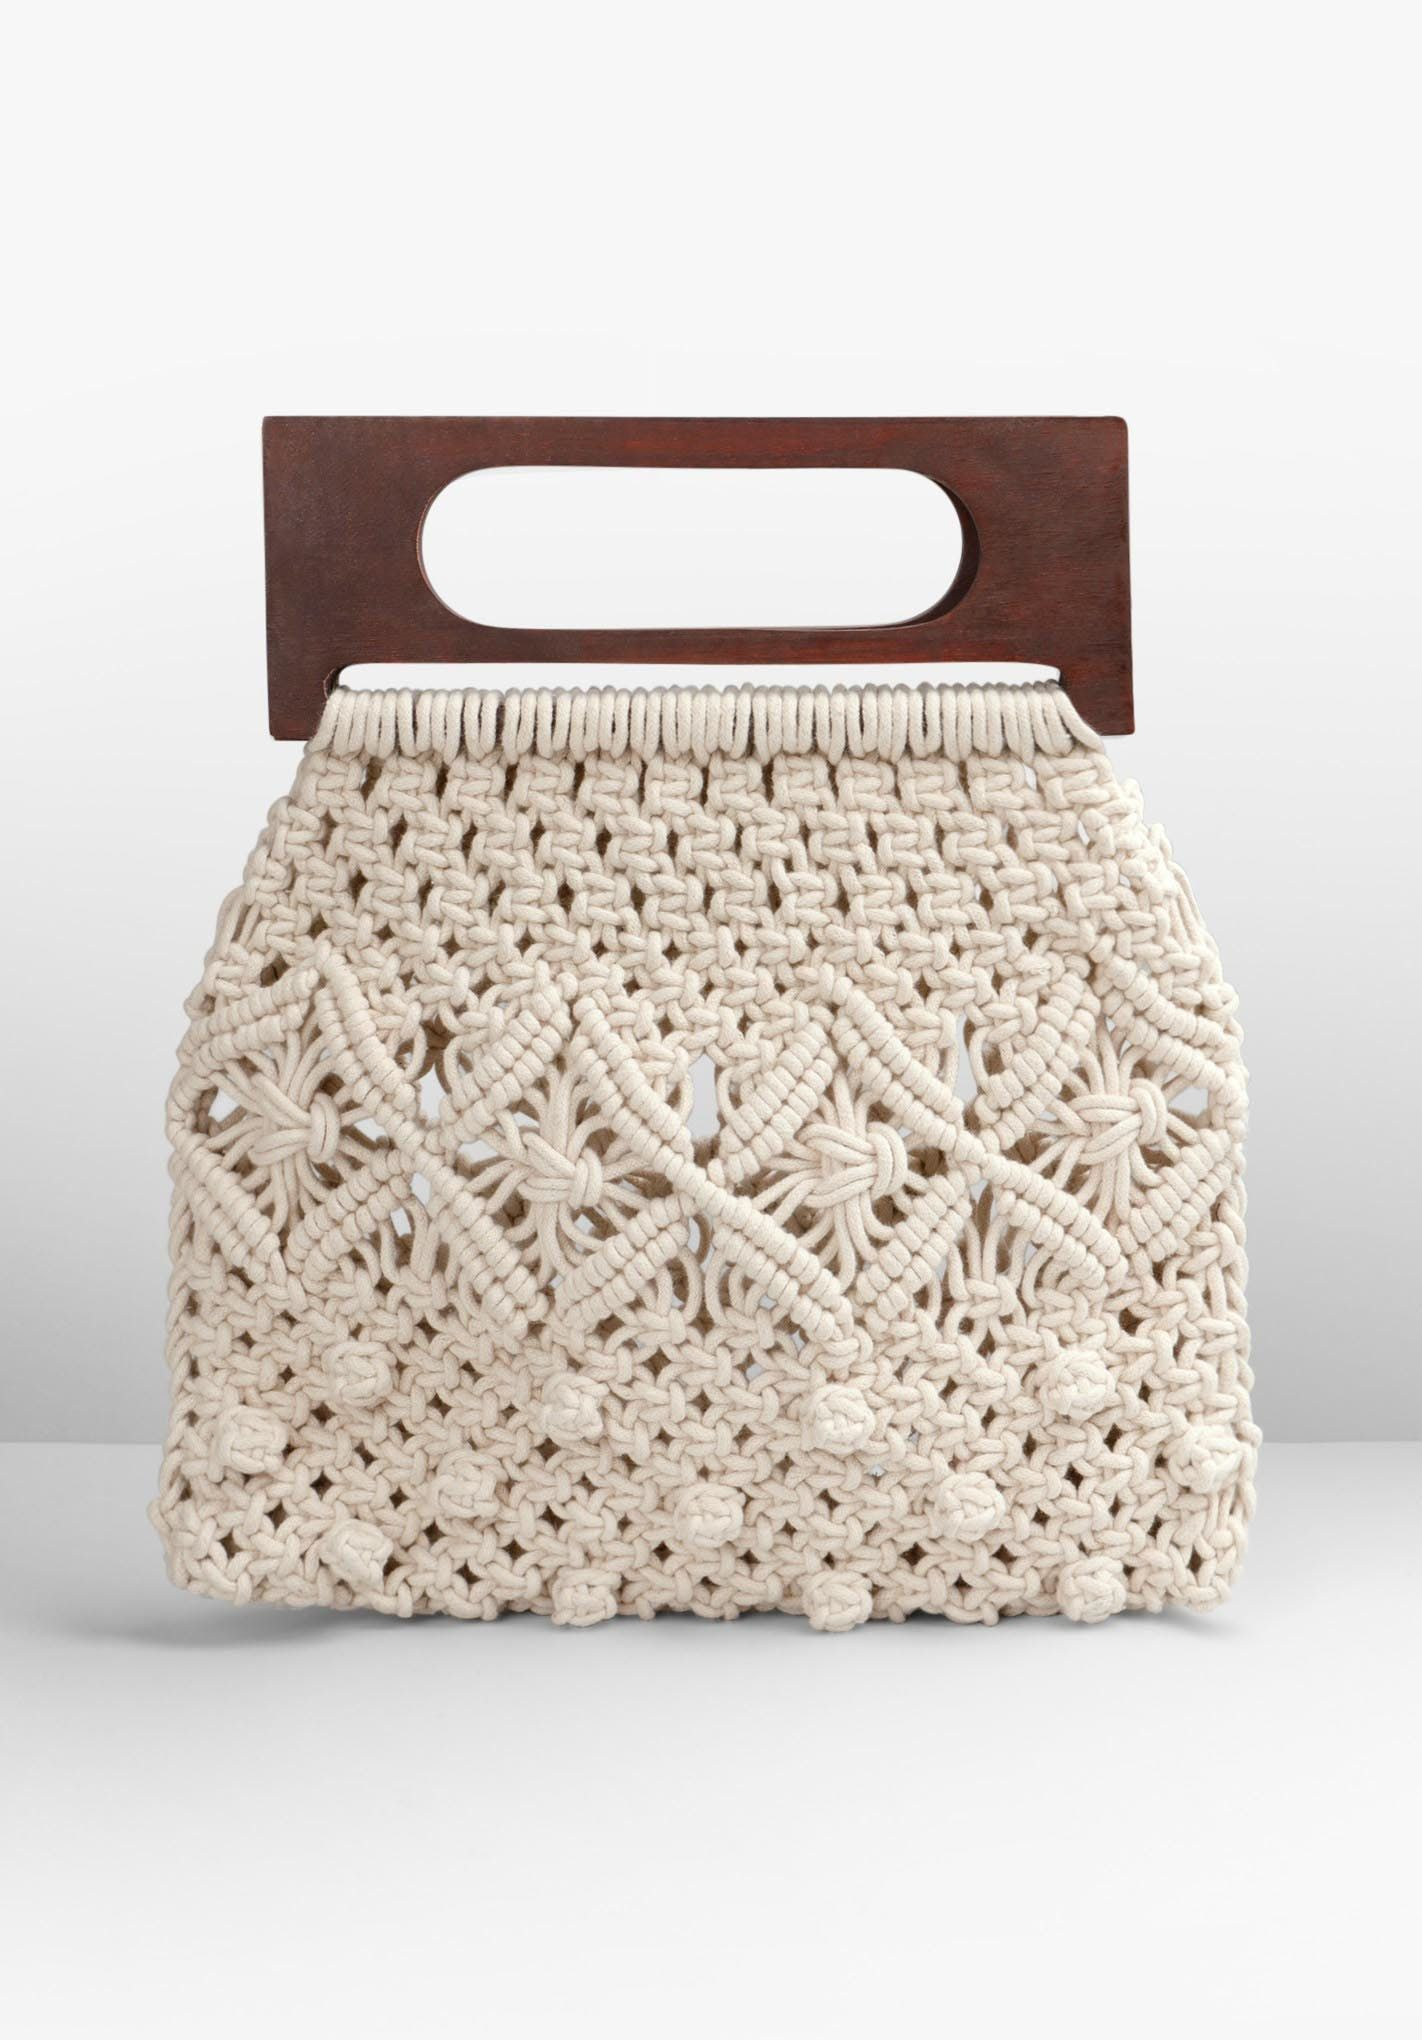 Naxos Crochet Bag Woven Handbag With Wooden Handles Hush Everyday Essentials Products Wooden Handles Bags